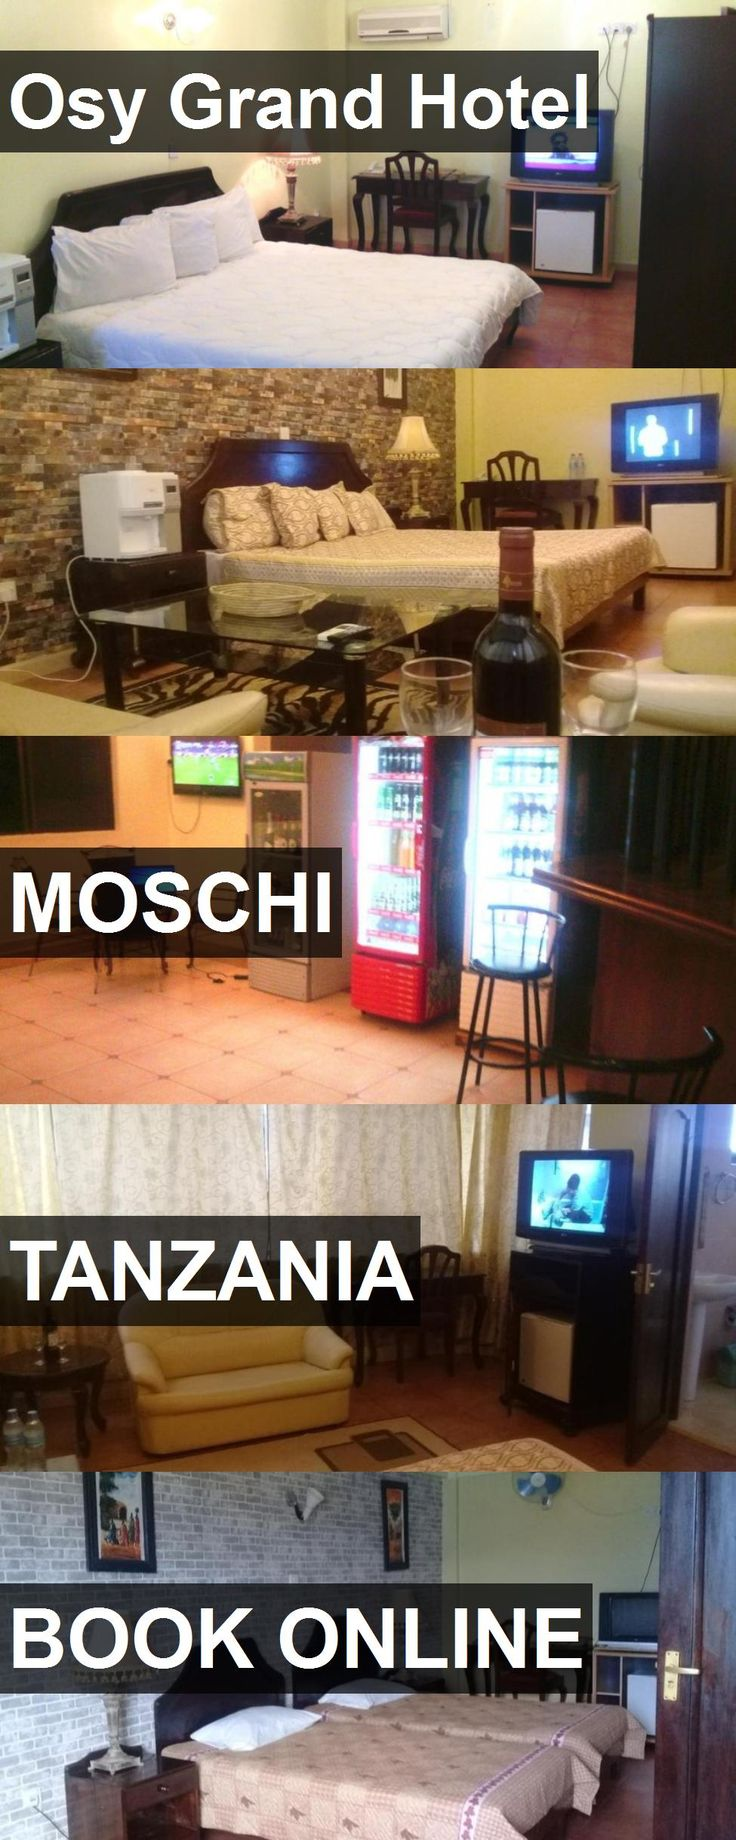 Hotel Osy Grand Hotel in Moschi, Tanzania. For more information, photos, reviews and best prices please follow the link. #Tanzania #Moschi #OsyGrandHotel #hotel #travel #vacation